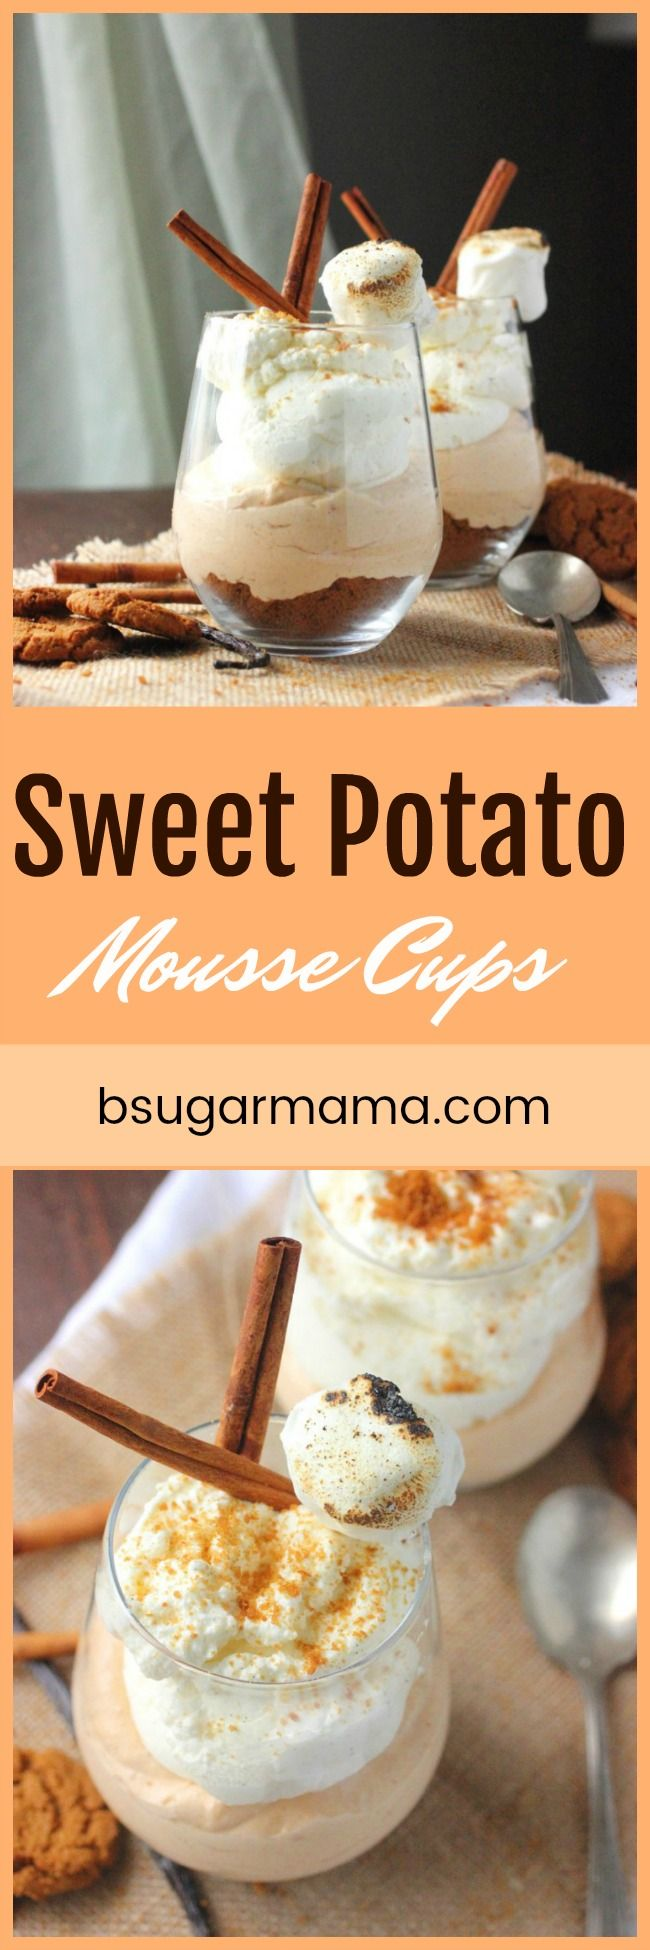 Sweet Potato Mousse Cups are a perfect dessert that is easy to make. This has a gingersnap bottom sweet potato mousse, vanilla bean whipped cream.